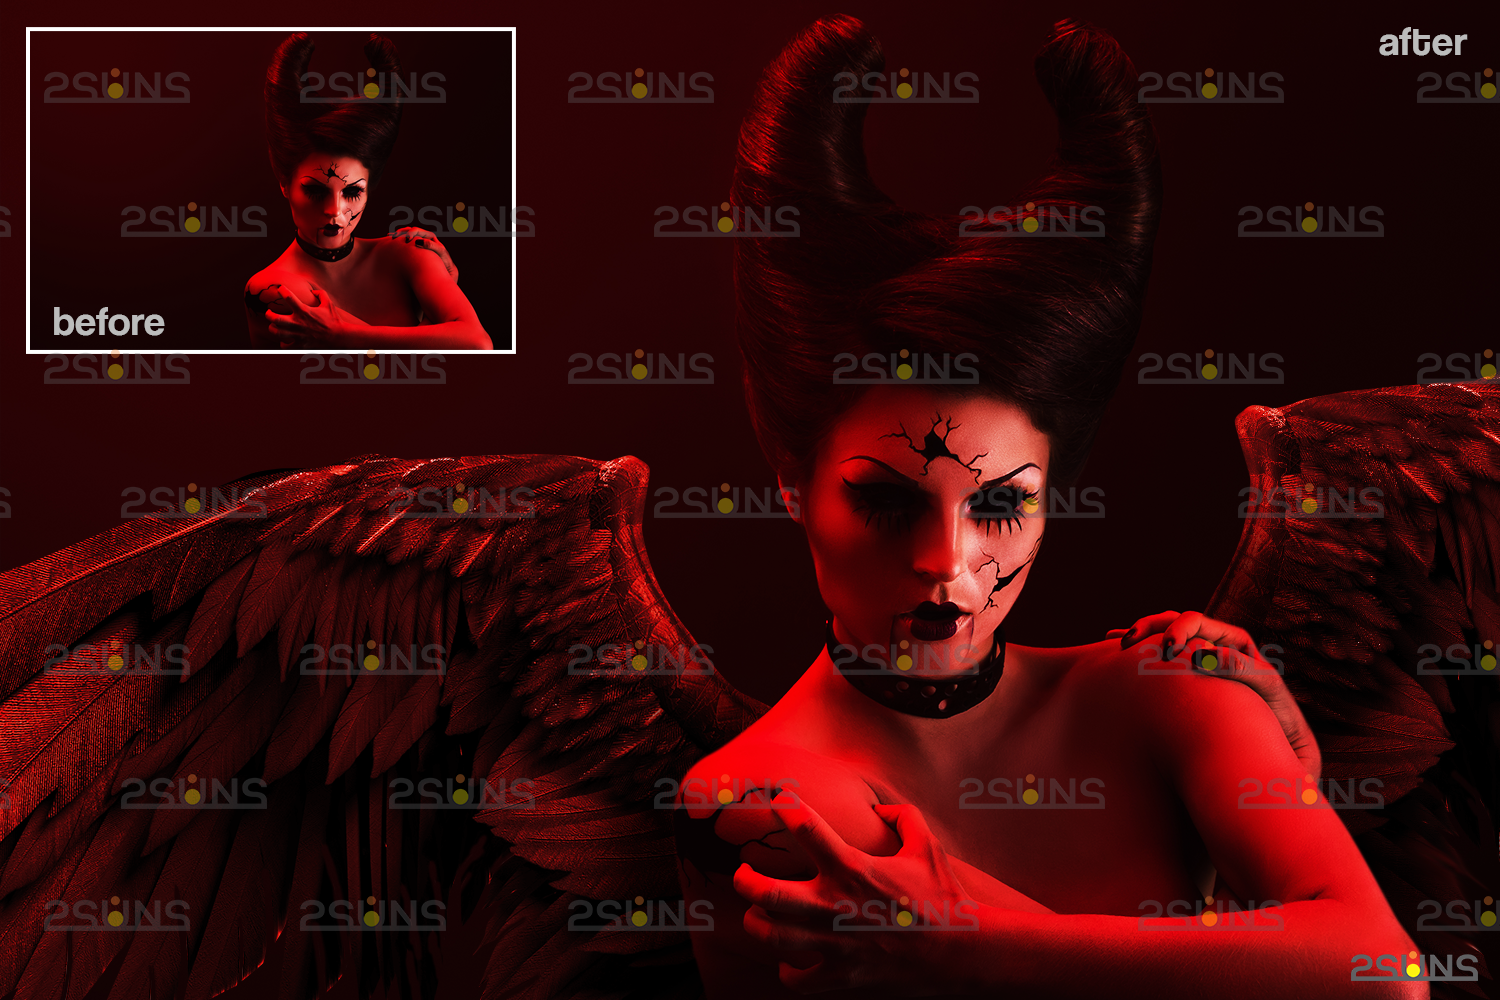 Red angel wings png & Photoshop overlay: Digital angel wings overlay, Digital backdrops wings, Fire - 008 56 -